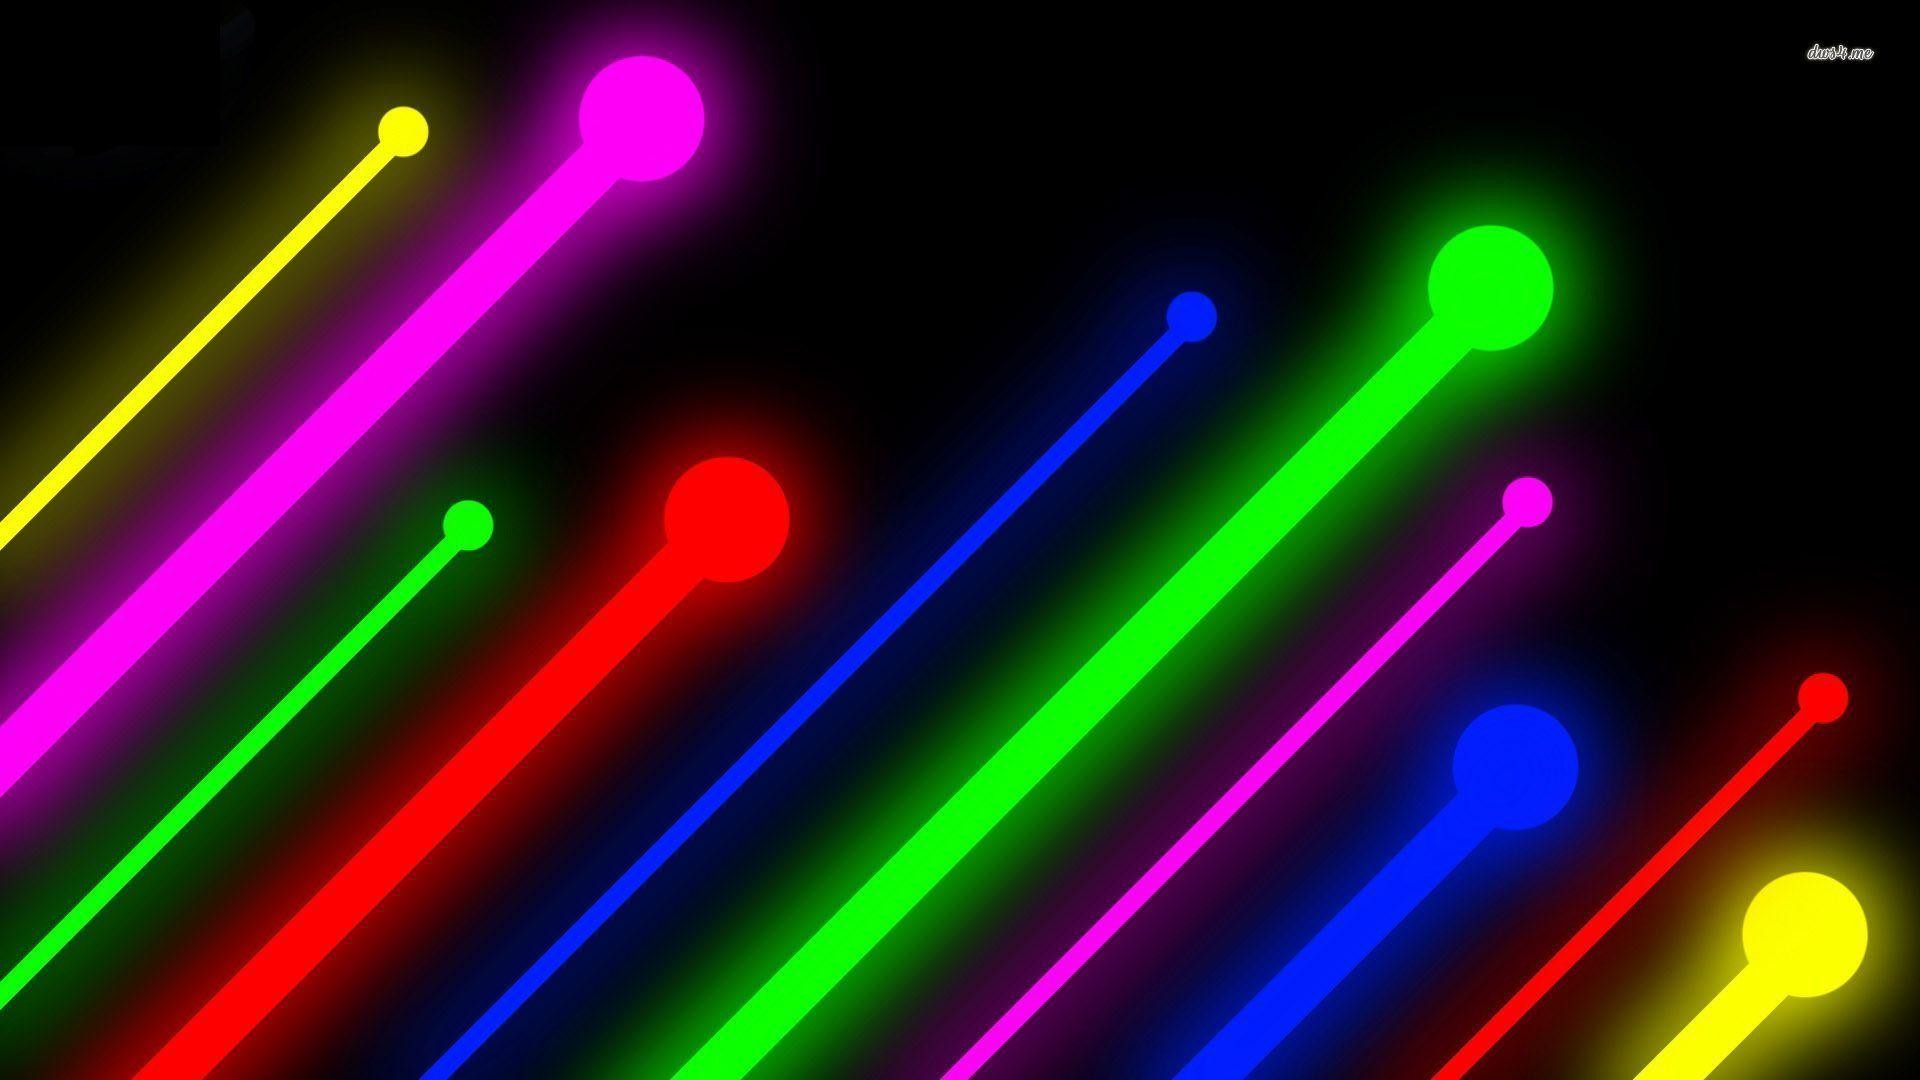 1920x1080 Neon Lights wallpaper - Abstract wallpapers - #